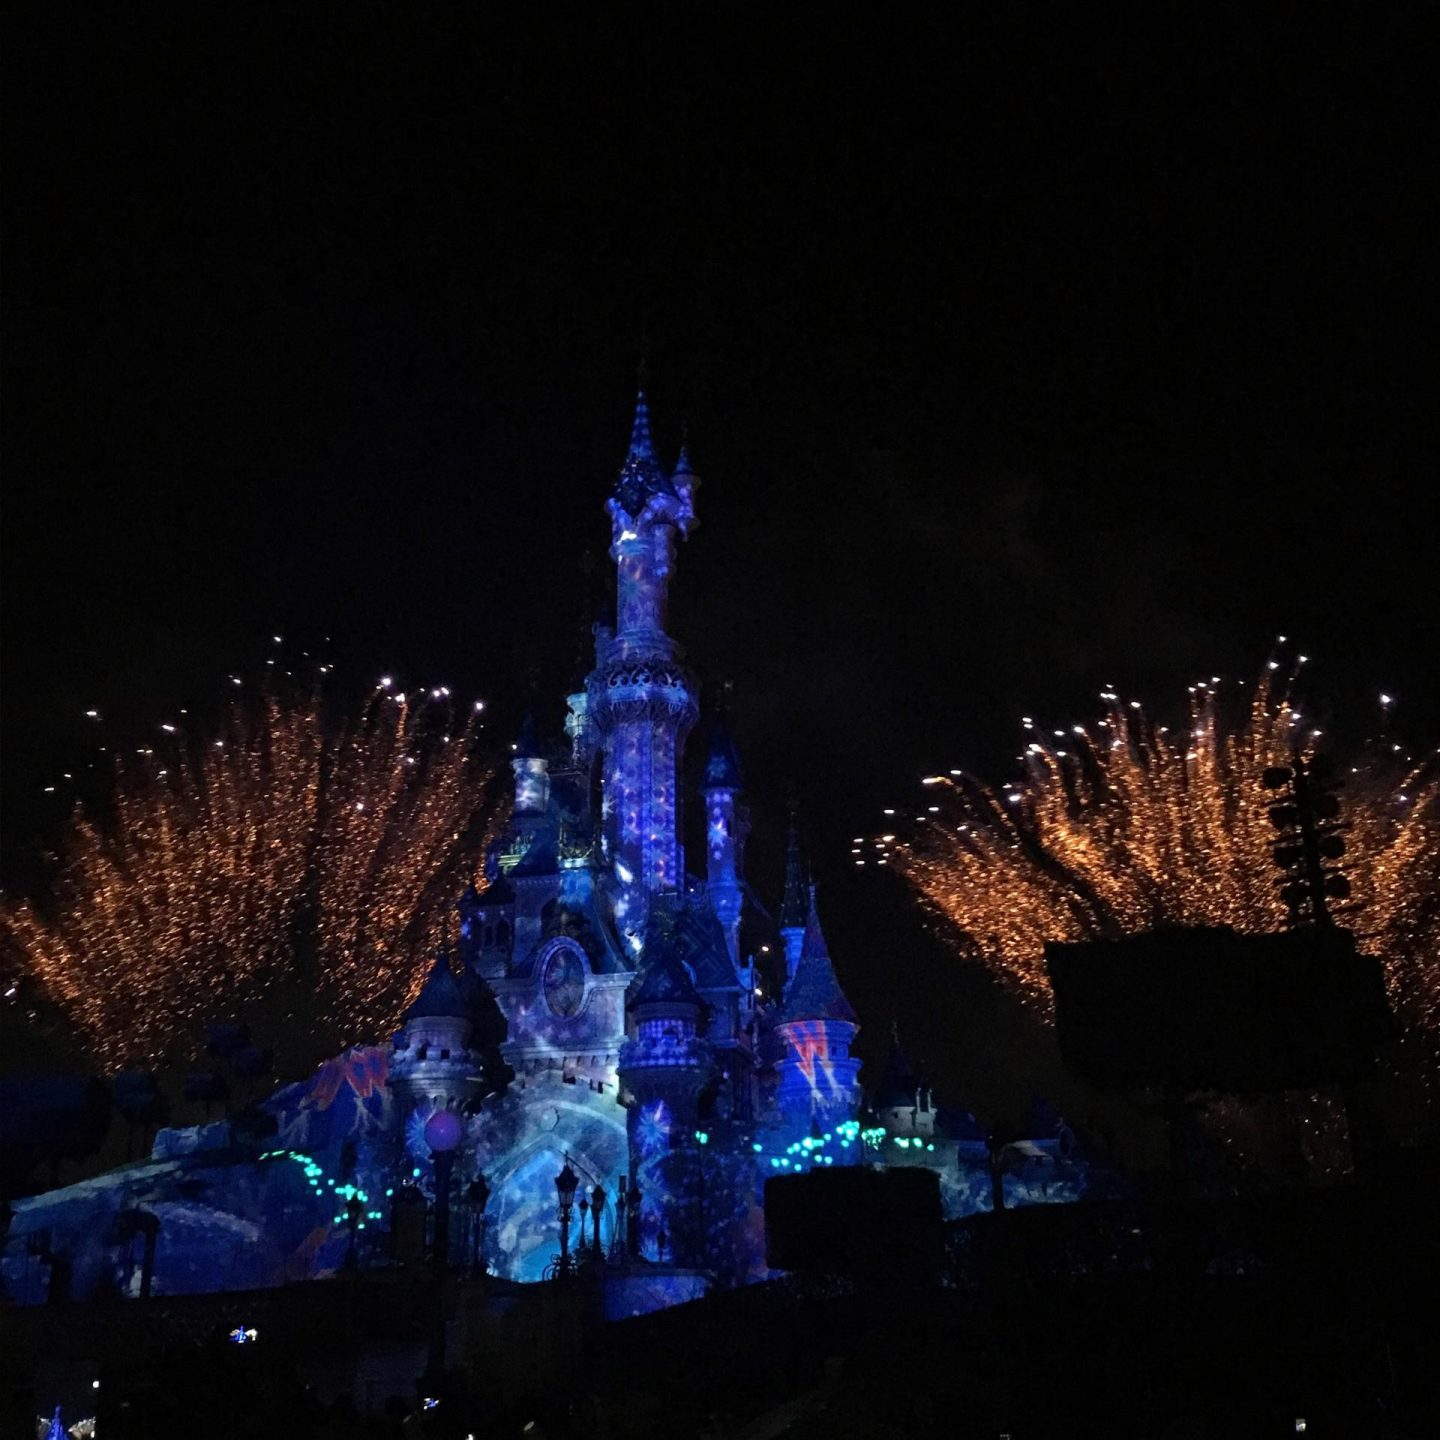 disneyland-paris-my-22nd-birthday-trip-rachel-nicole-uk-travel-disney-blogger-4